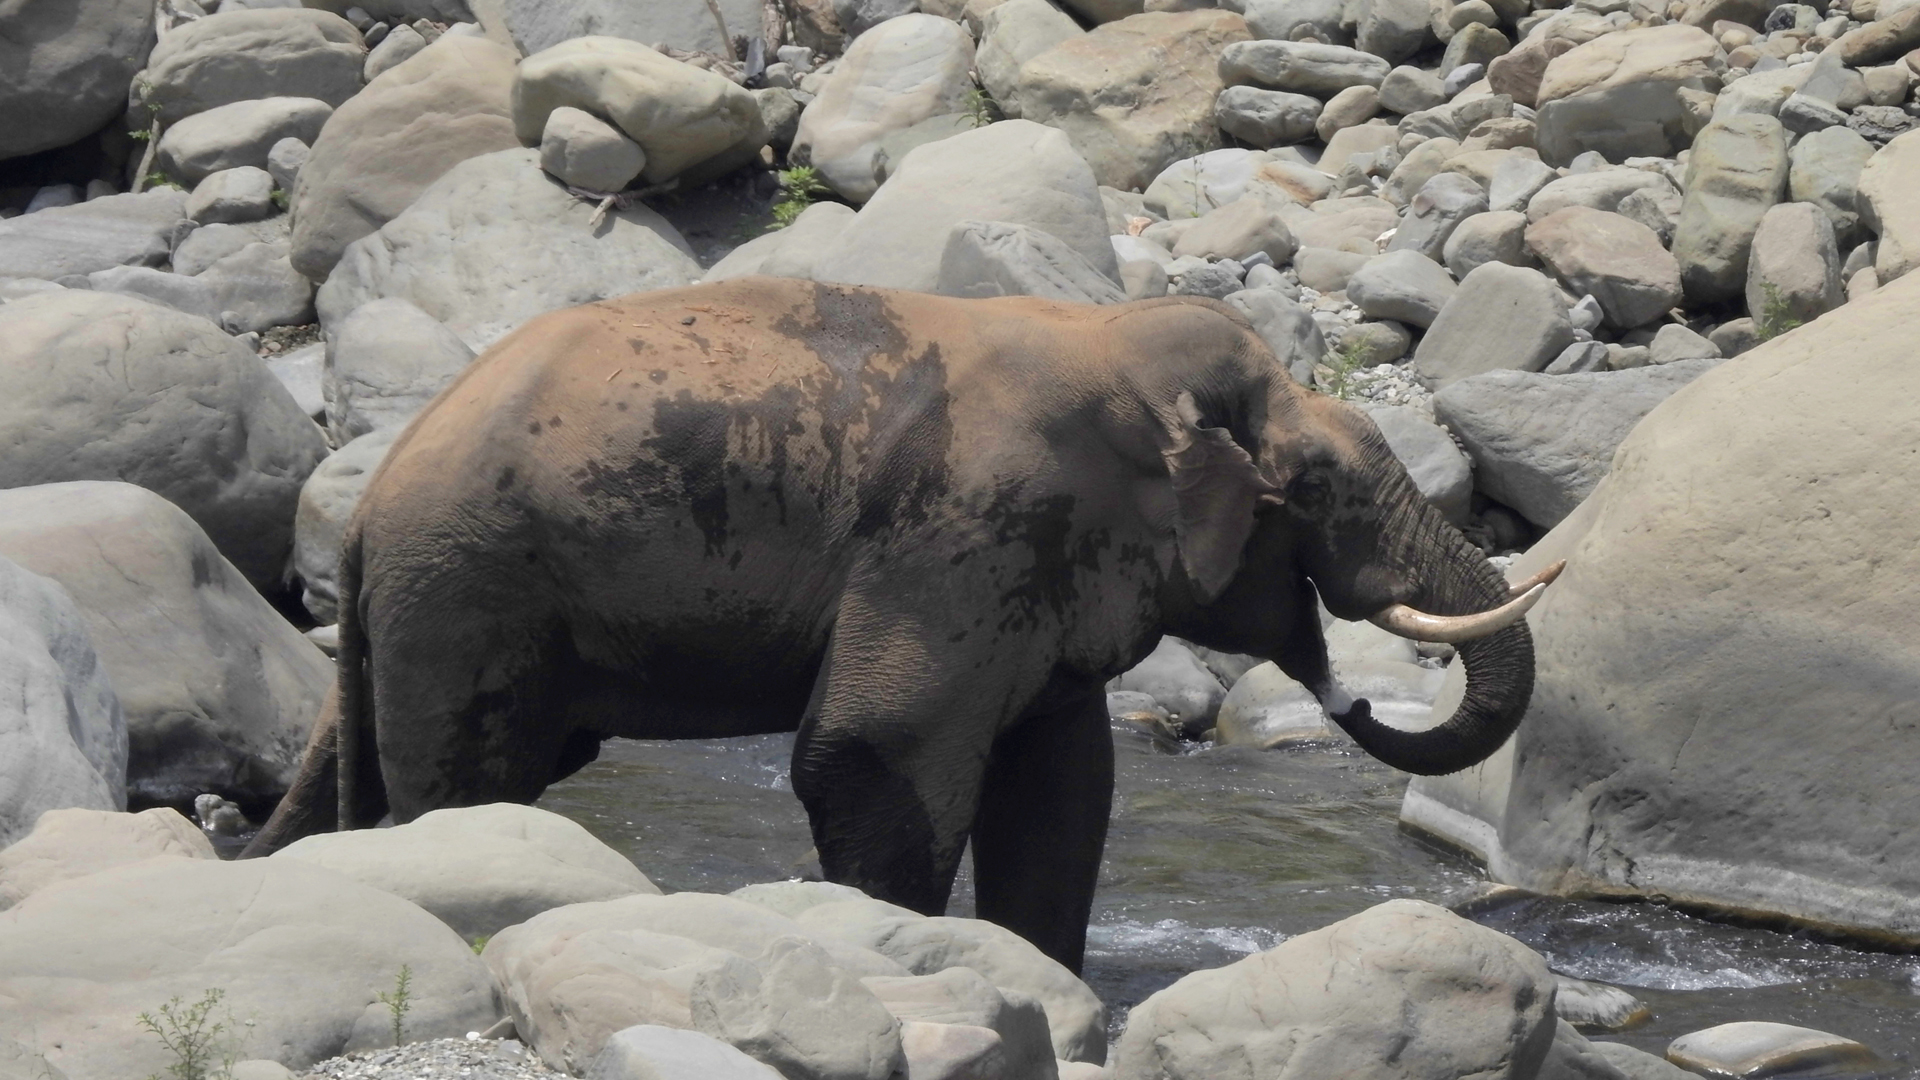 Sub-Himalayan Farmers Distressed With Move To Derecognize Elephant Reserve